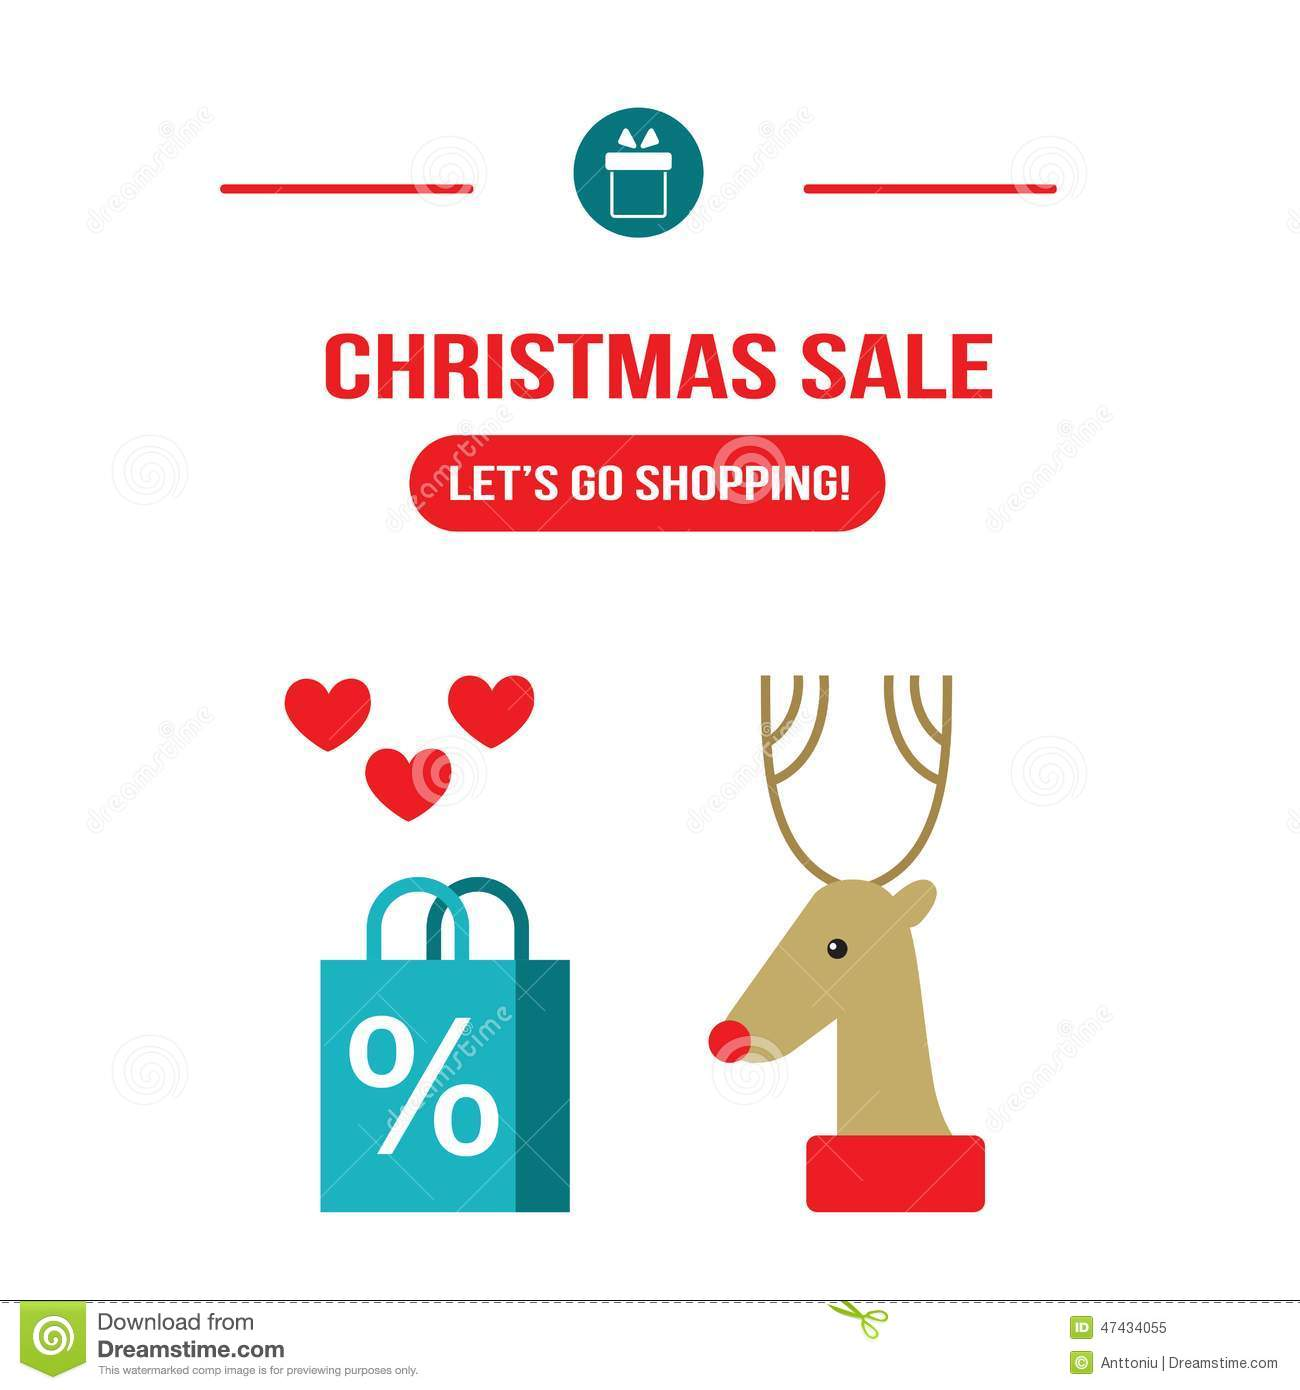 New Year Christmas Sale Let S Go Shopping Design Template